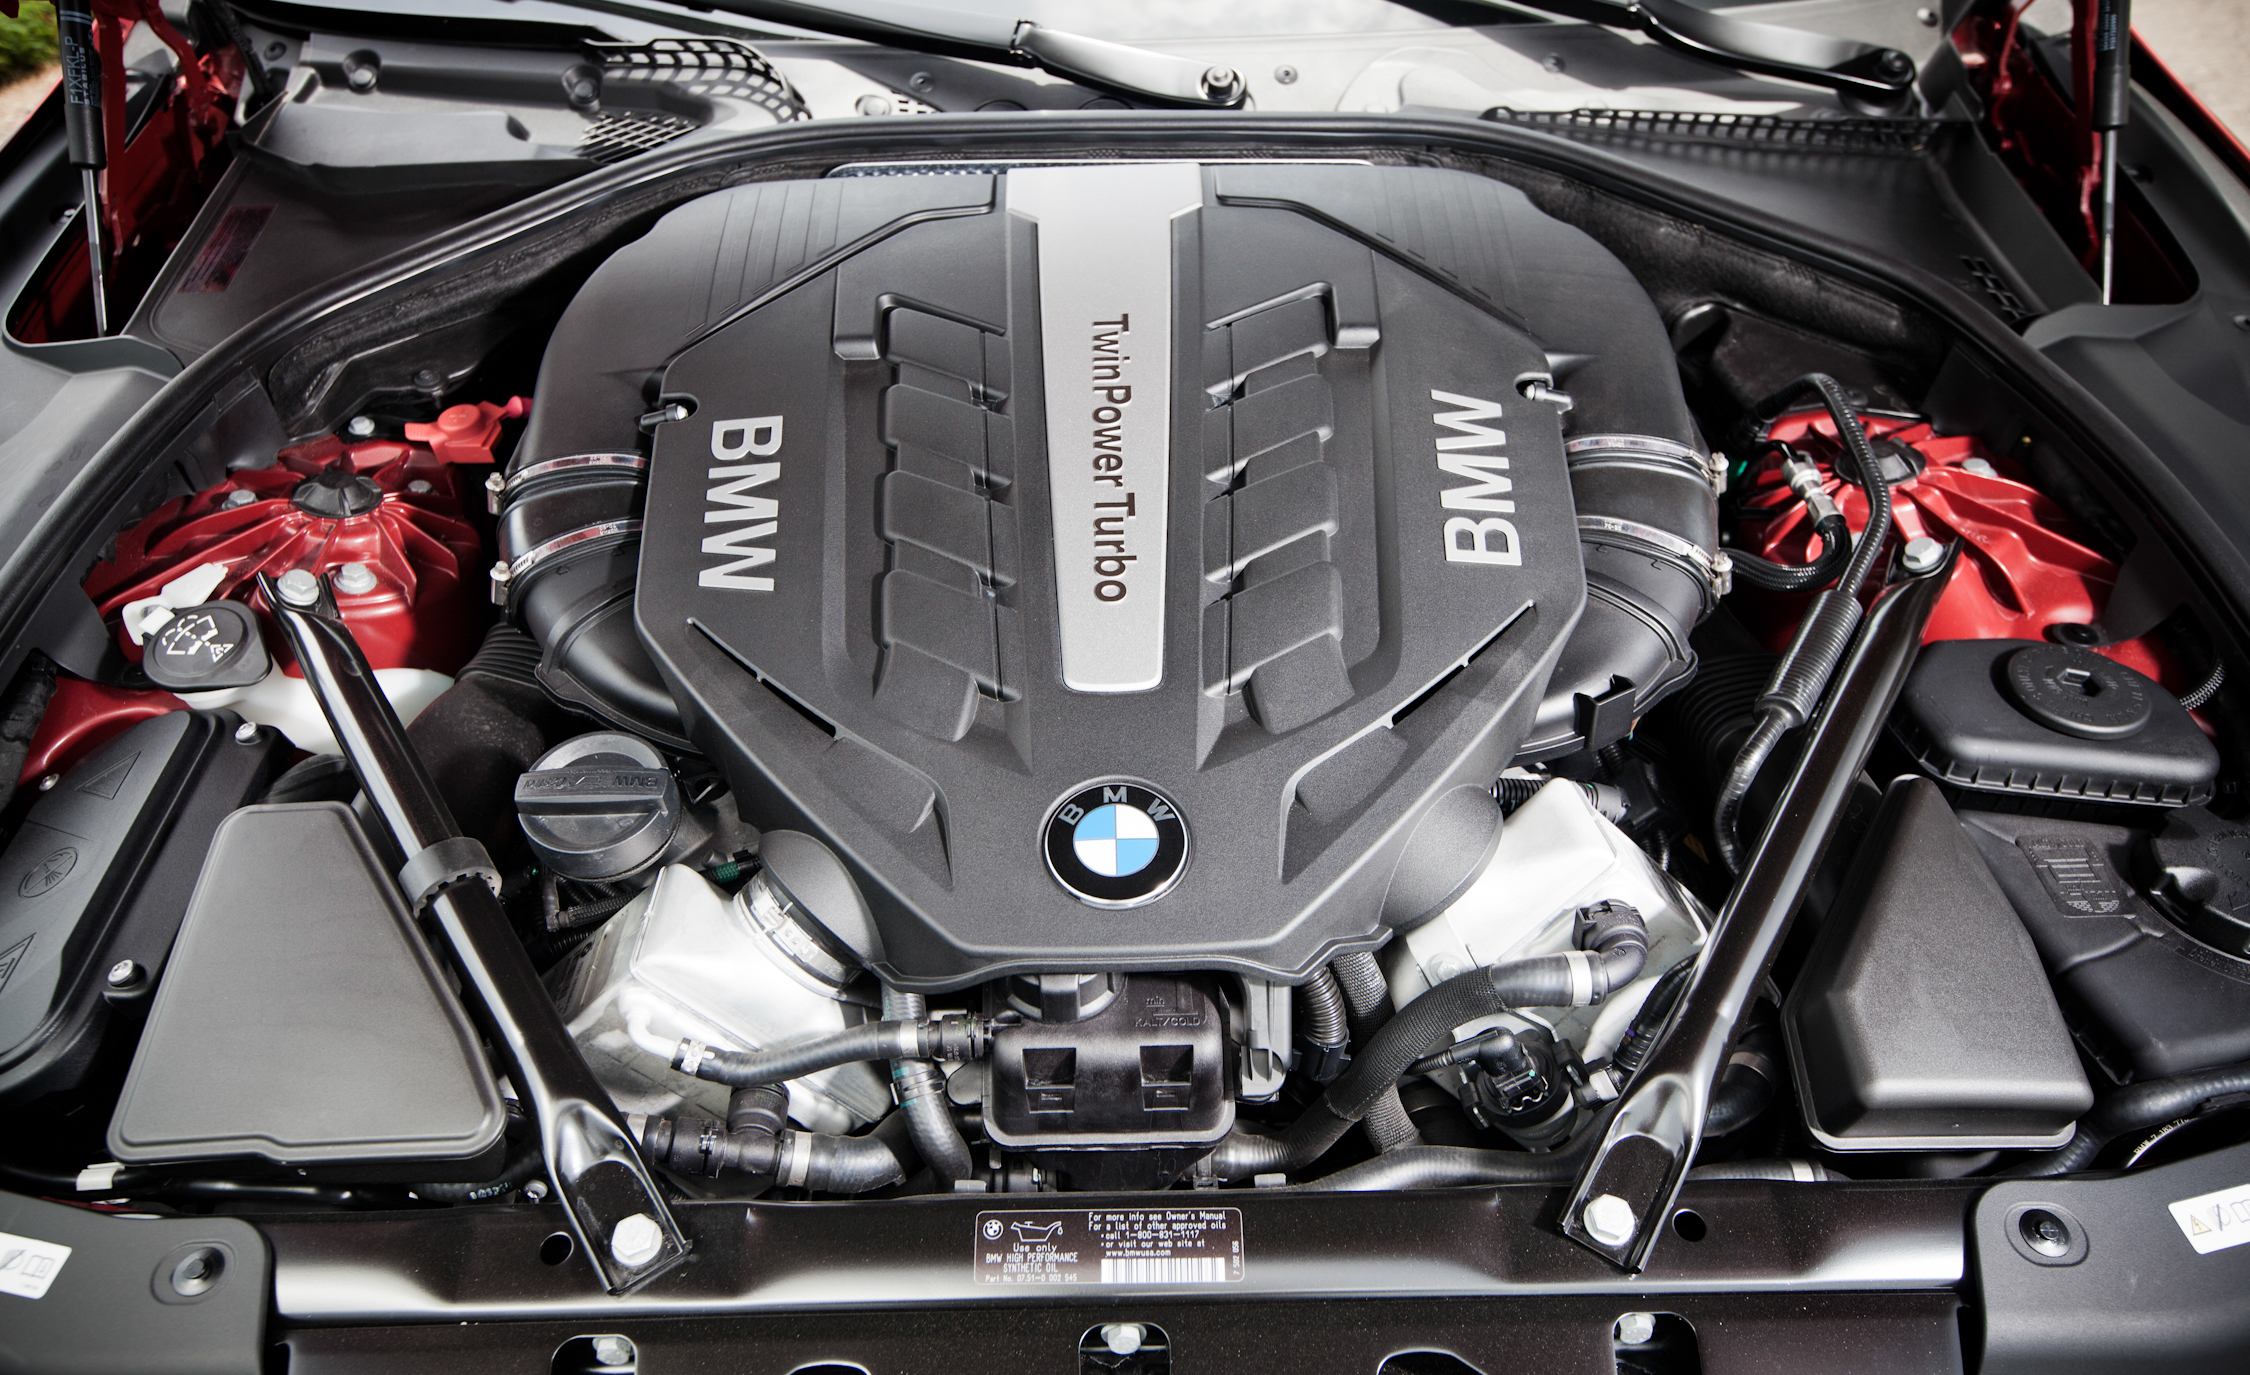 2012 BMW 650i Convertible View Engine (Photo 19 of 19)